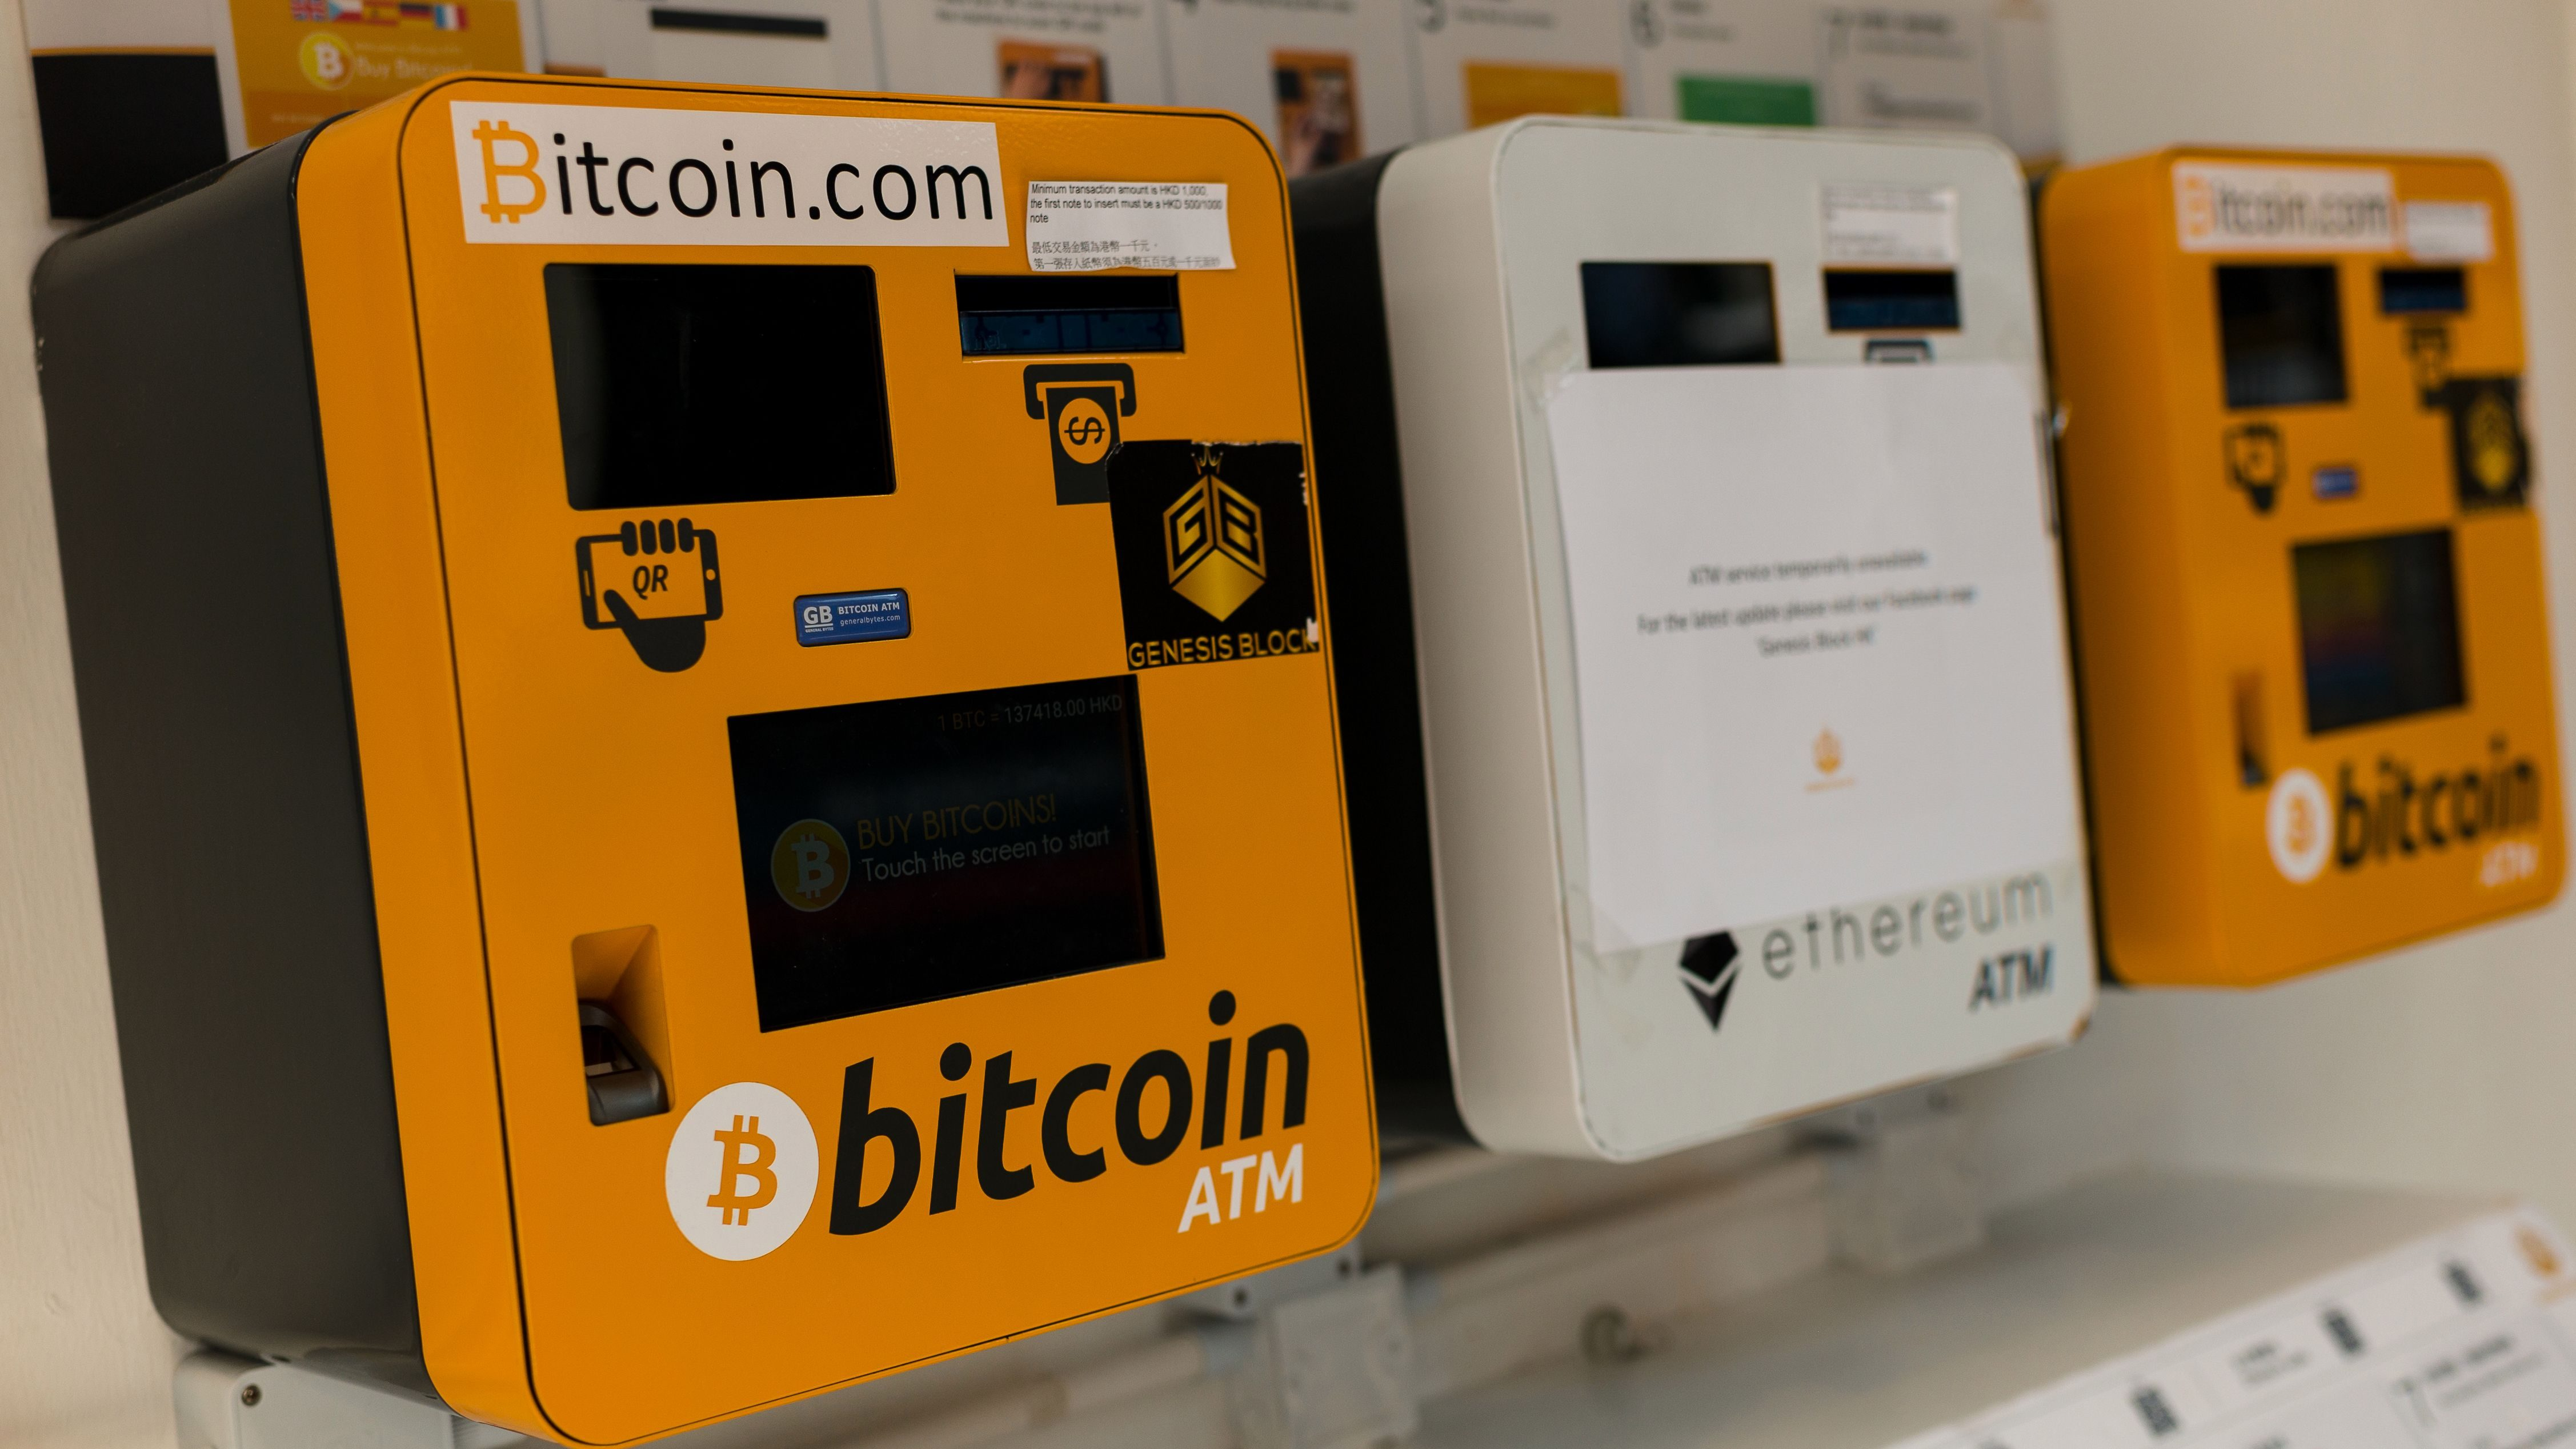 Bitcoin ATMs are seen in Wanchai, Hong Kong, China, 11 December 2017. Bitcoin futures surged more than 20 per cent to above 18,000 US dollar as they launched on the Chicago Board Options Exchange (CBOE) on 11 December. CBOE is the first exchange in the world to launch bitcoin futures trading.